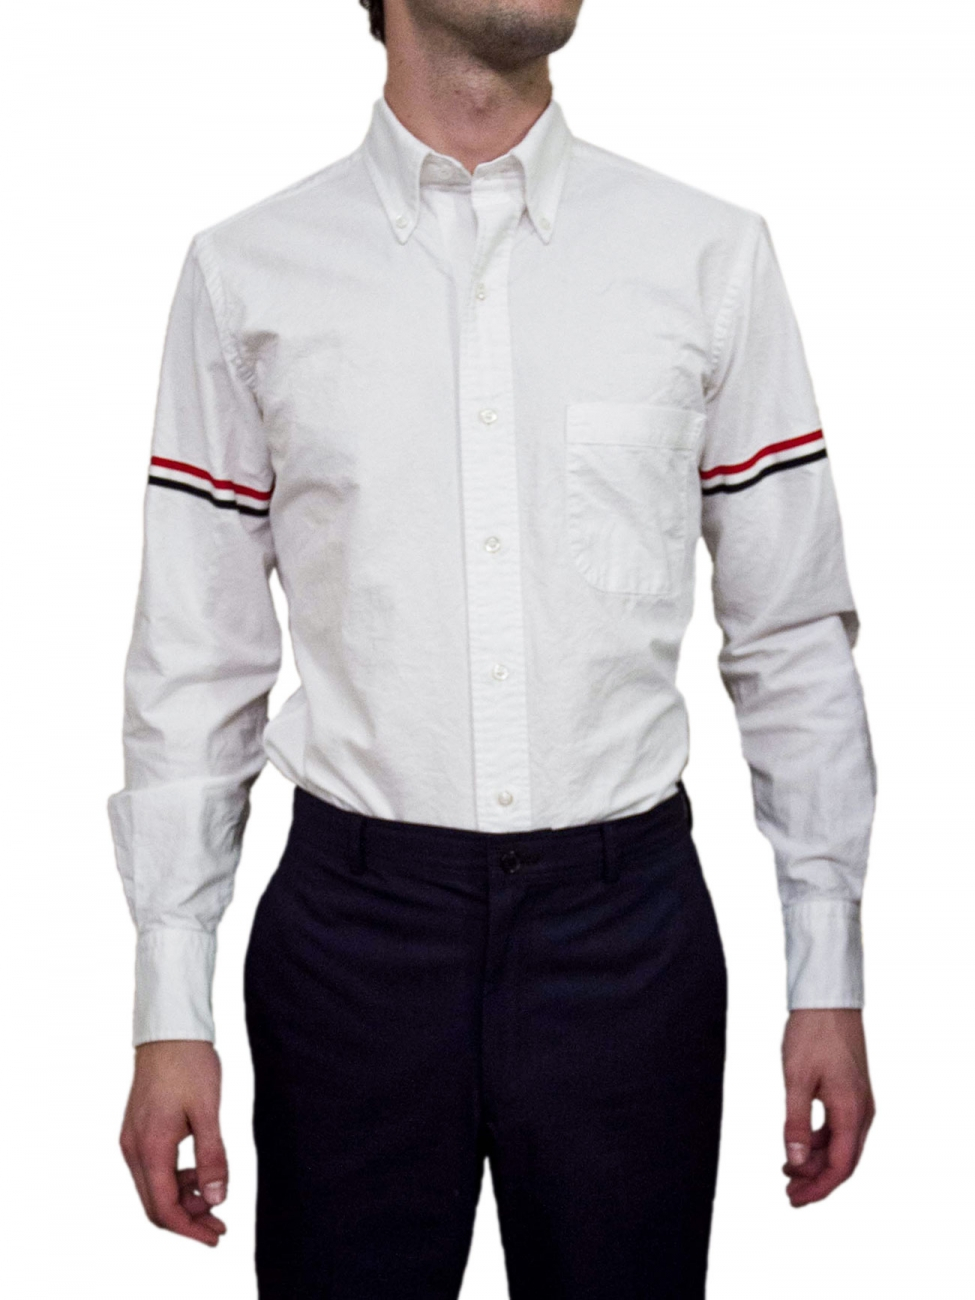 Thom browne optic white shirt in white for men lyst for Thom browne white shirt